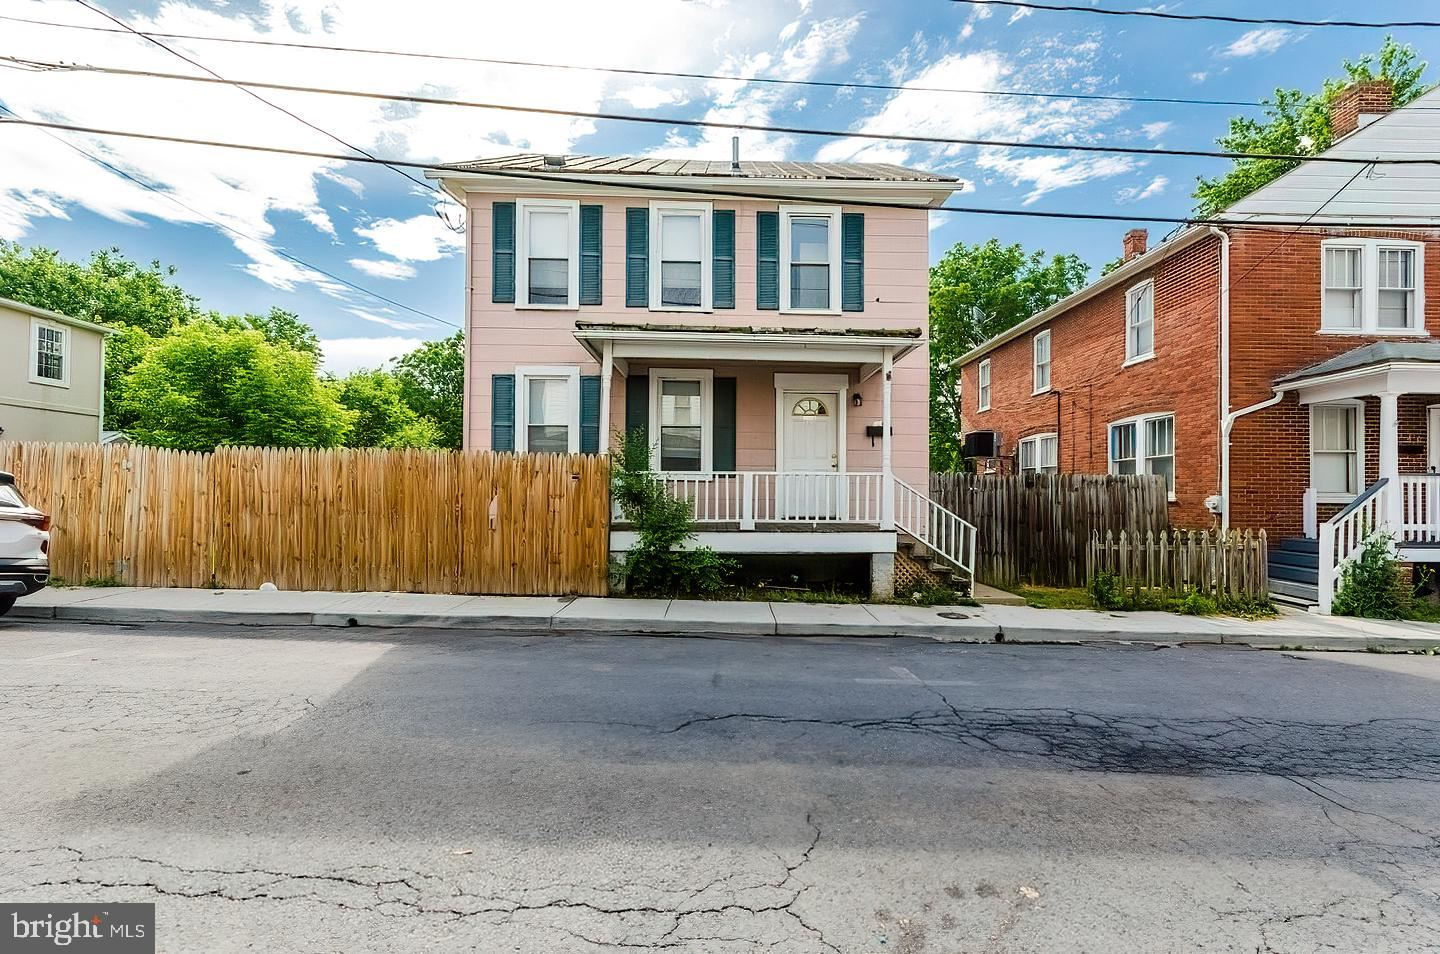 Photo of 320 FAIRVIEW AVE, WINCHESTER, VA 22601 (MLS # VAWI116326)